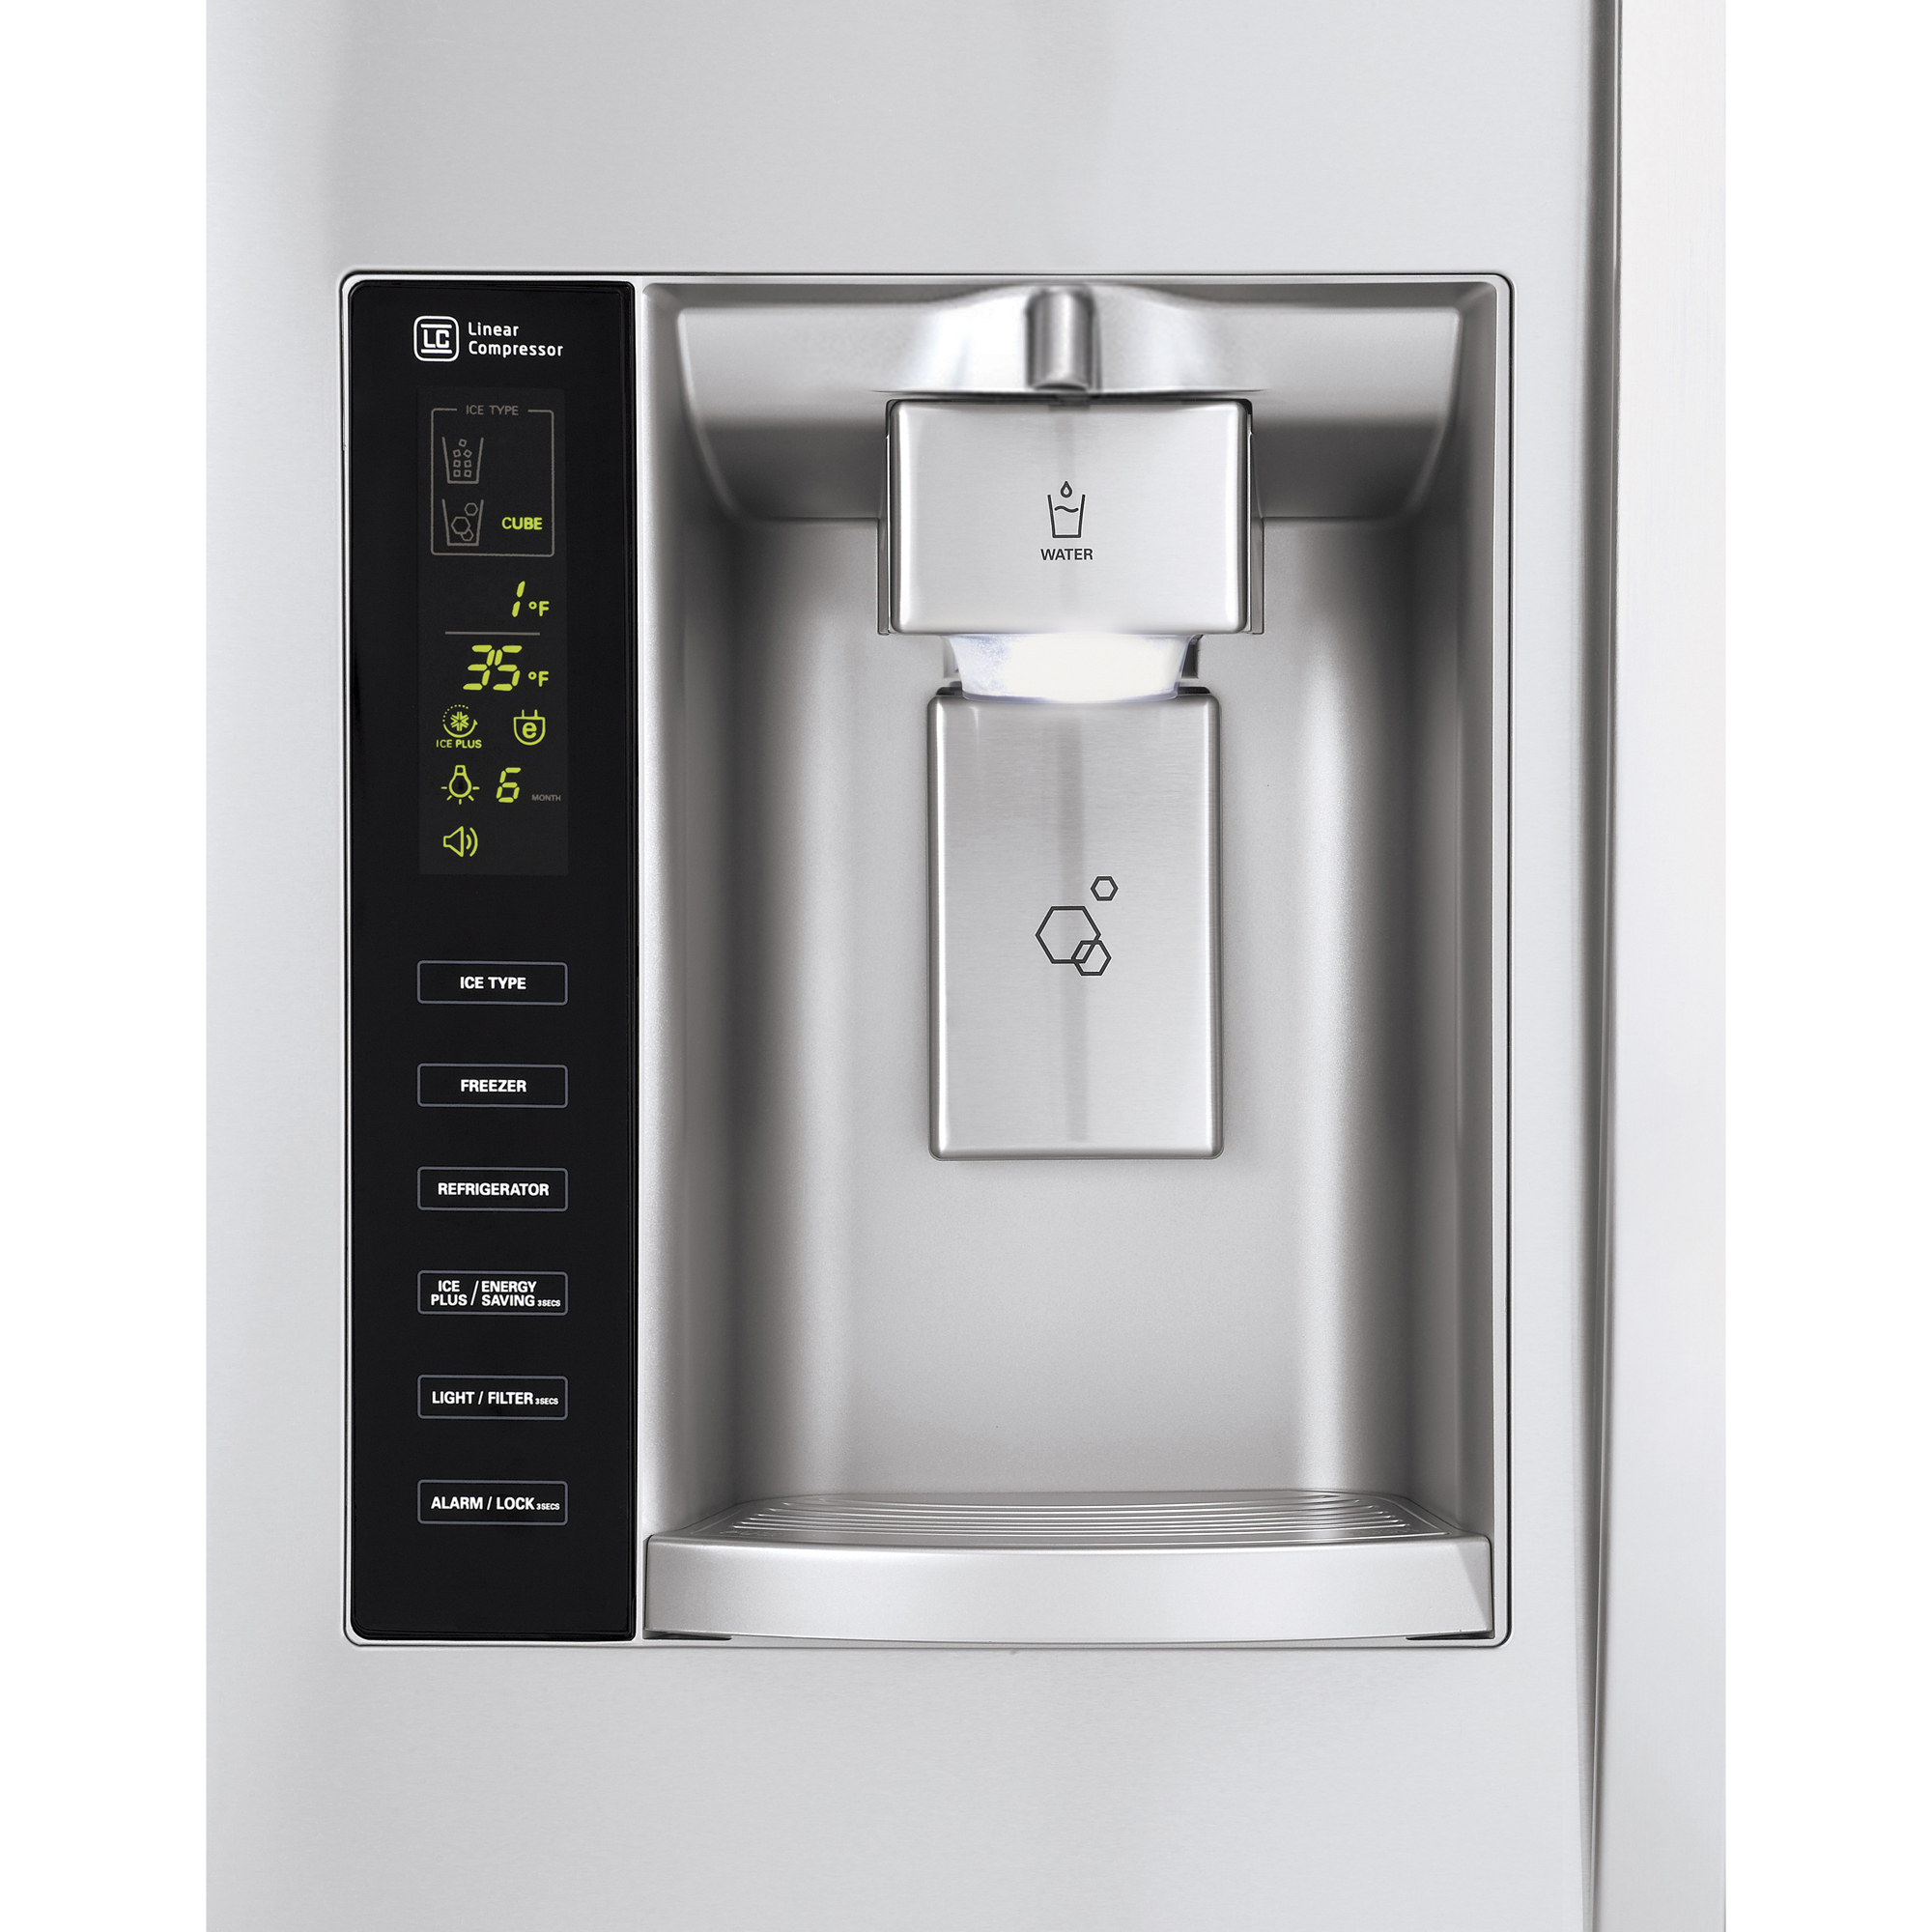 LG LSXS26326S 26.2 cu. ft. Side-by-Side Refrigerator w/ Ice & Water Dispenser